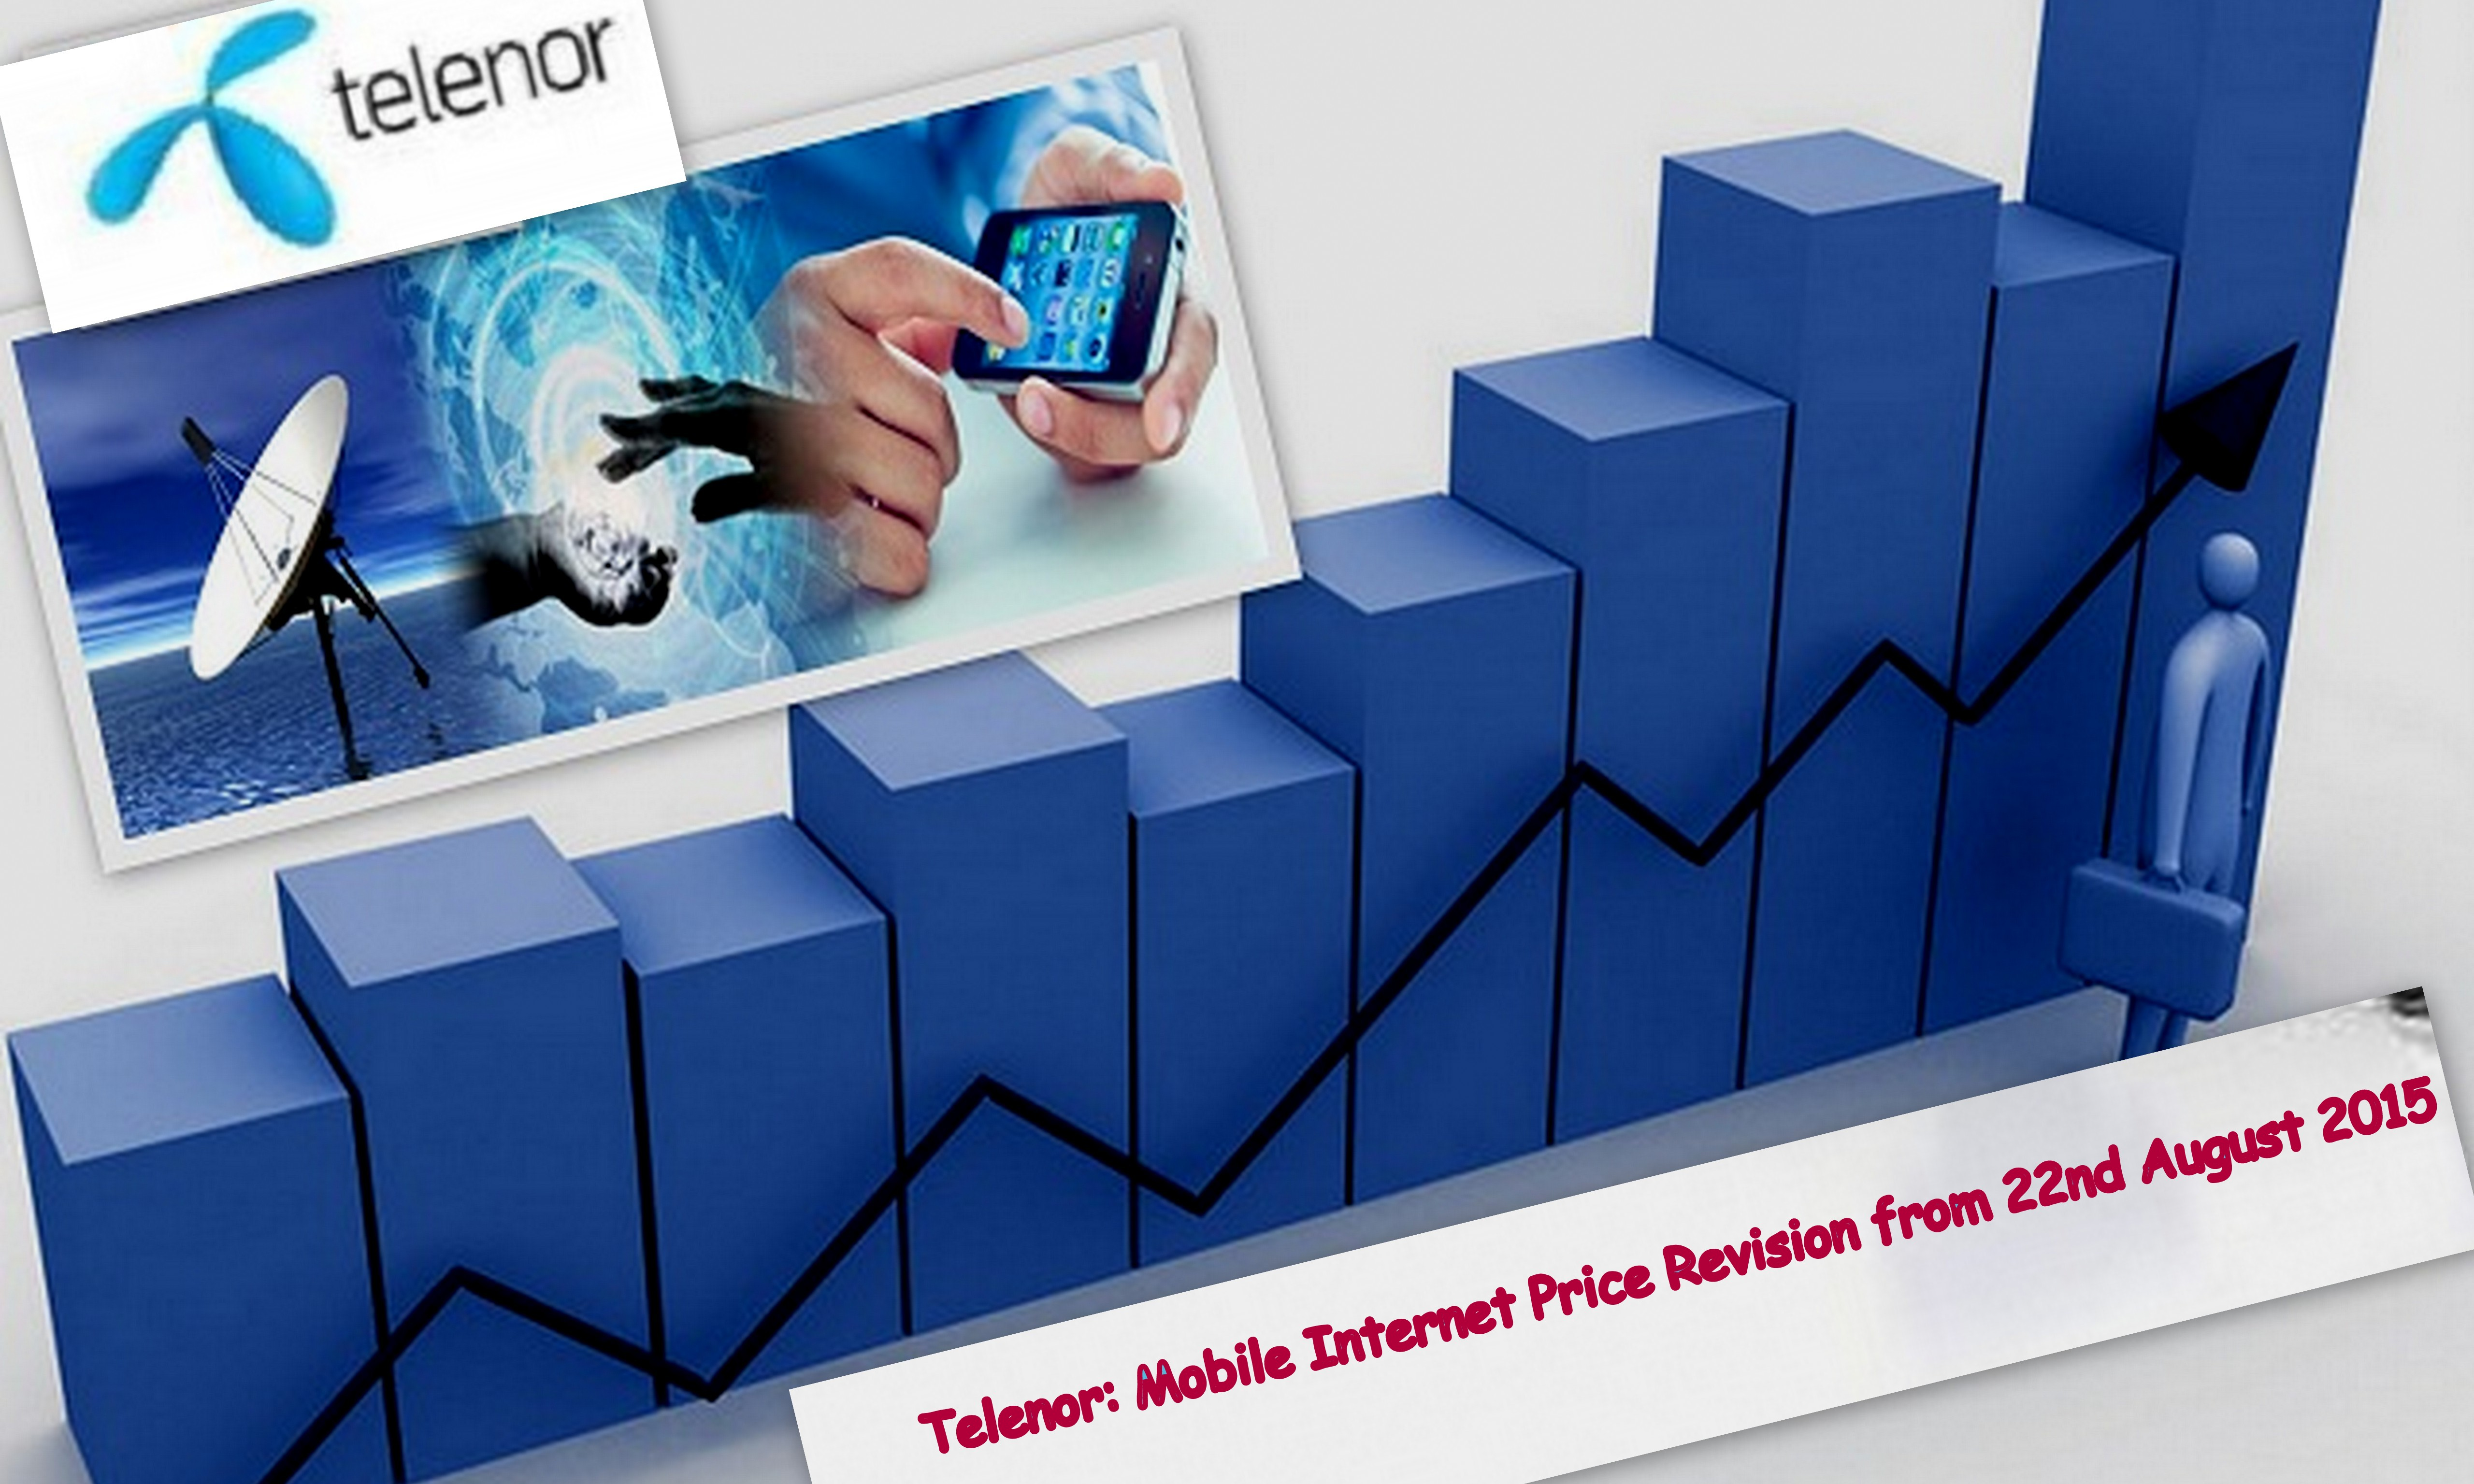 Telenor to Increase Tariffs from August 22 Due to the Latest Imposition of Internet Tax